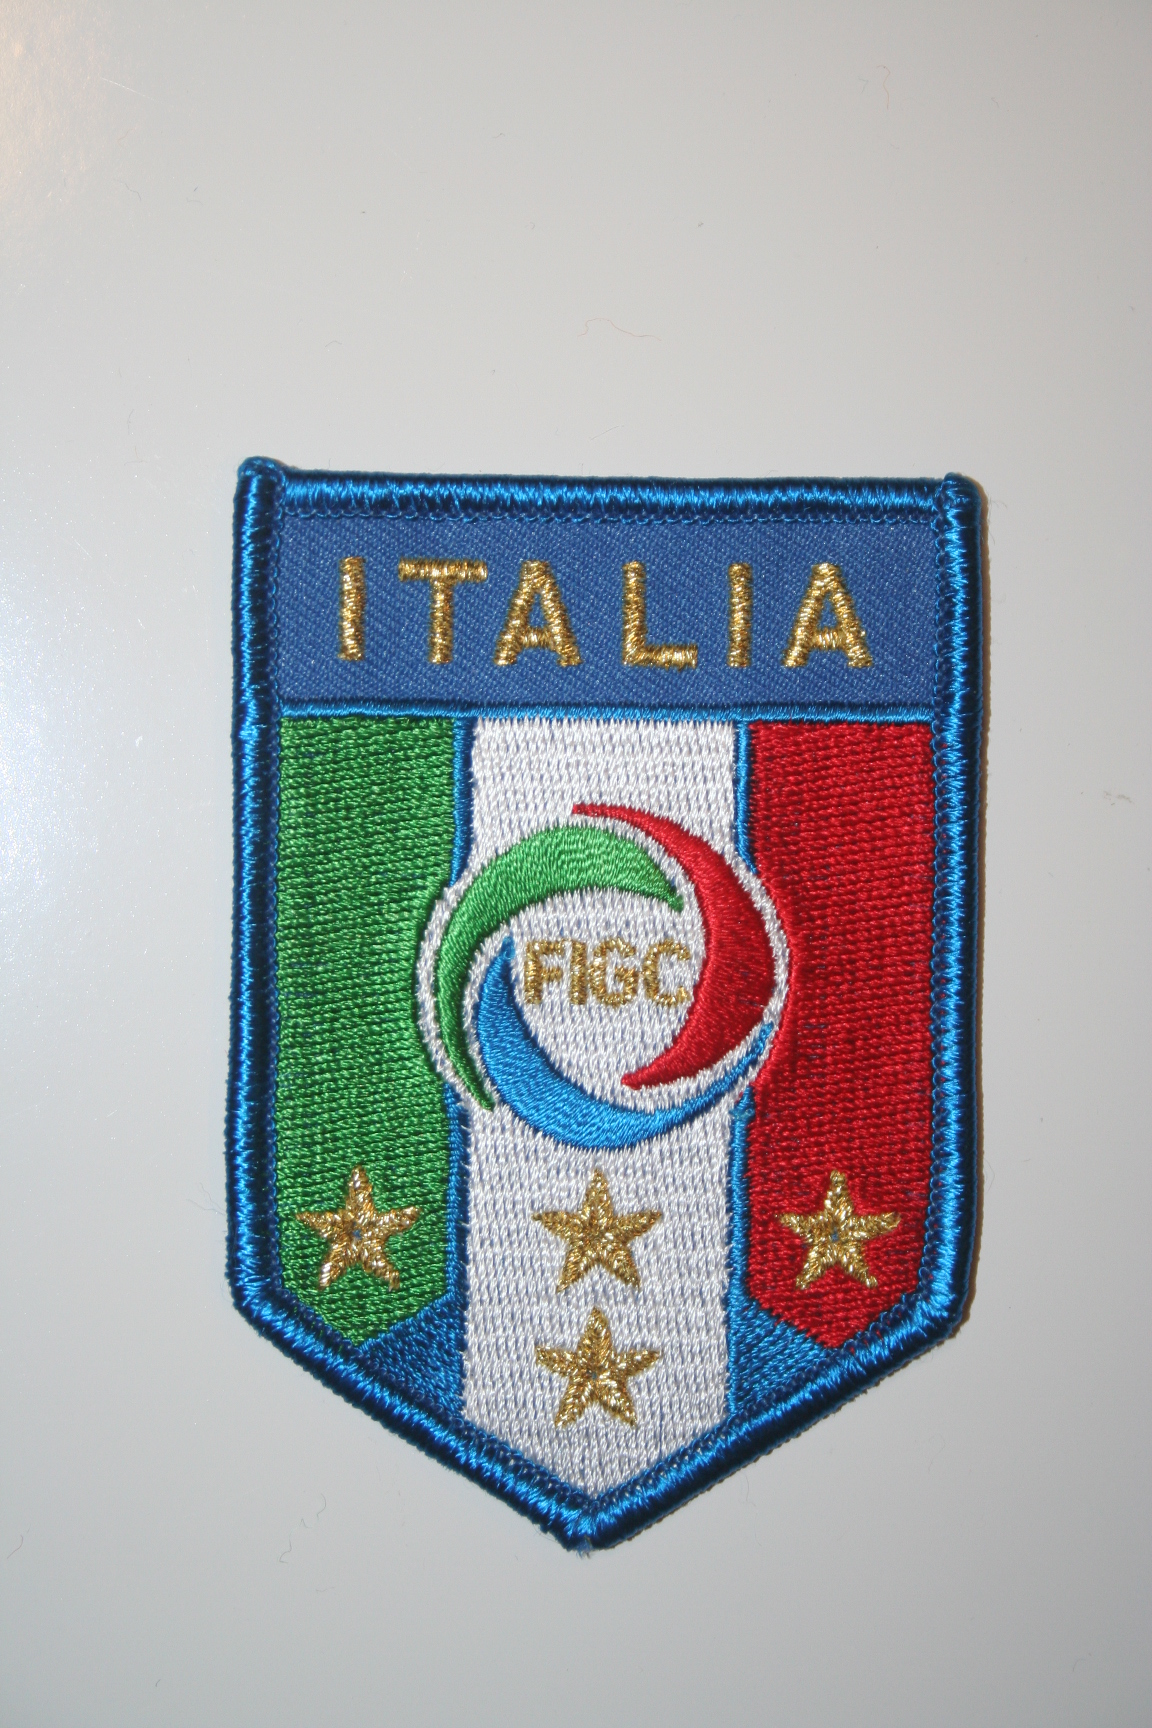 348df38e4 ITALIA FIFA WORLD CUP SOCCER OFFICIAL 4 STAR LOGO LARGE CREST PATCH BADGE  ... NEW